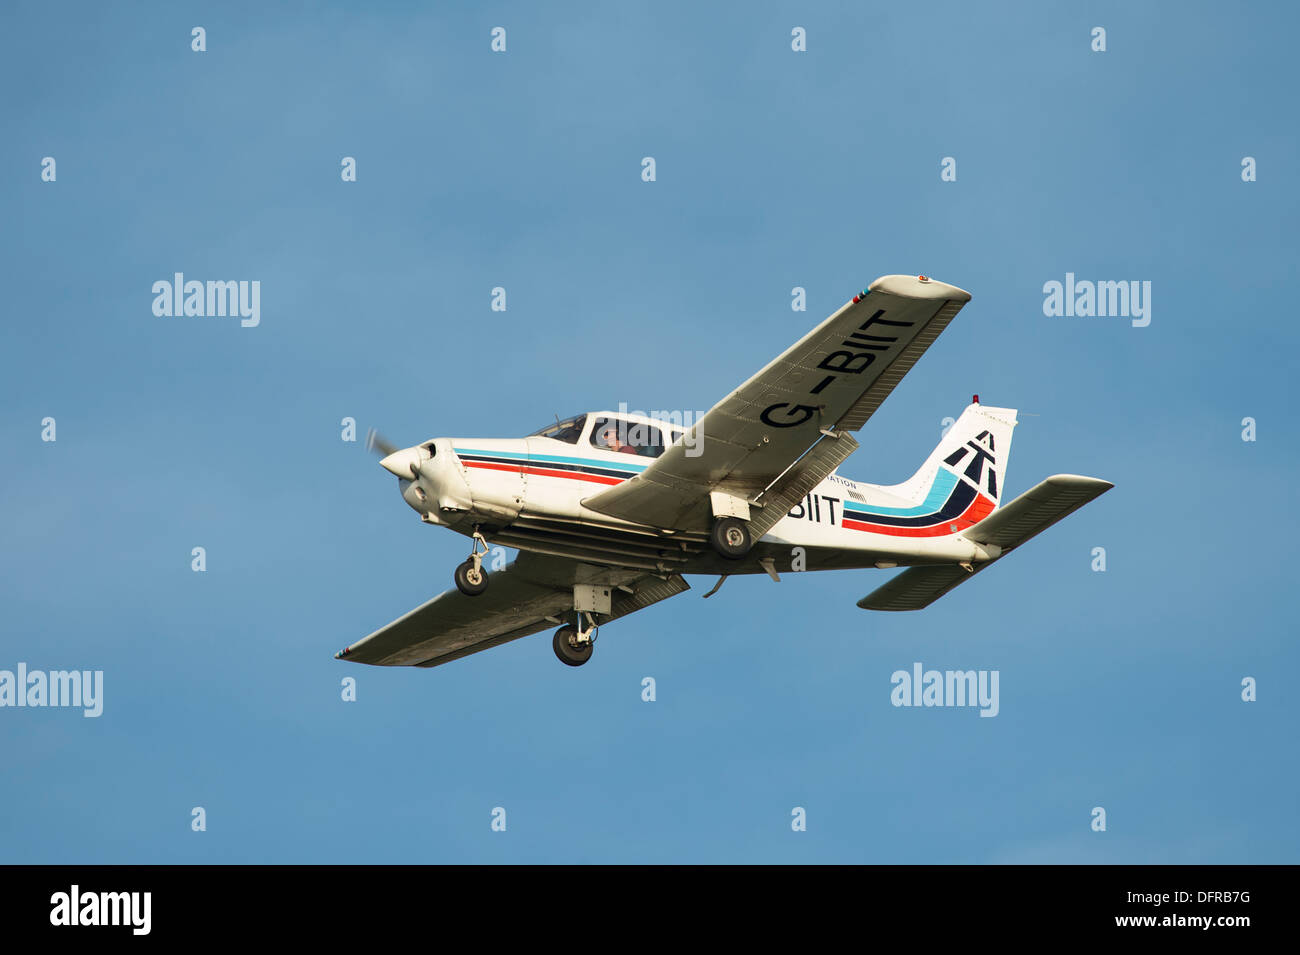 Light aircraft in Tayside Aviation colours flying overhead on a summer's day. - Stock Image